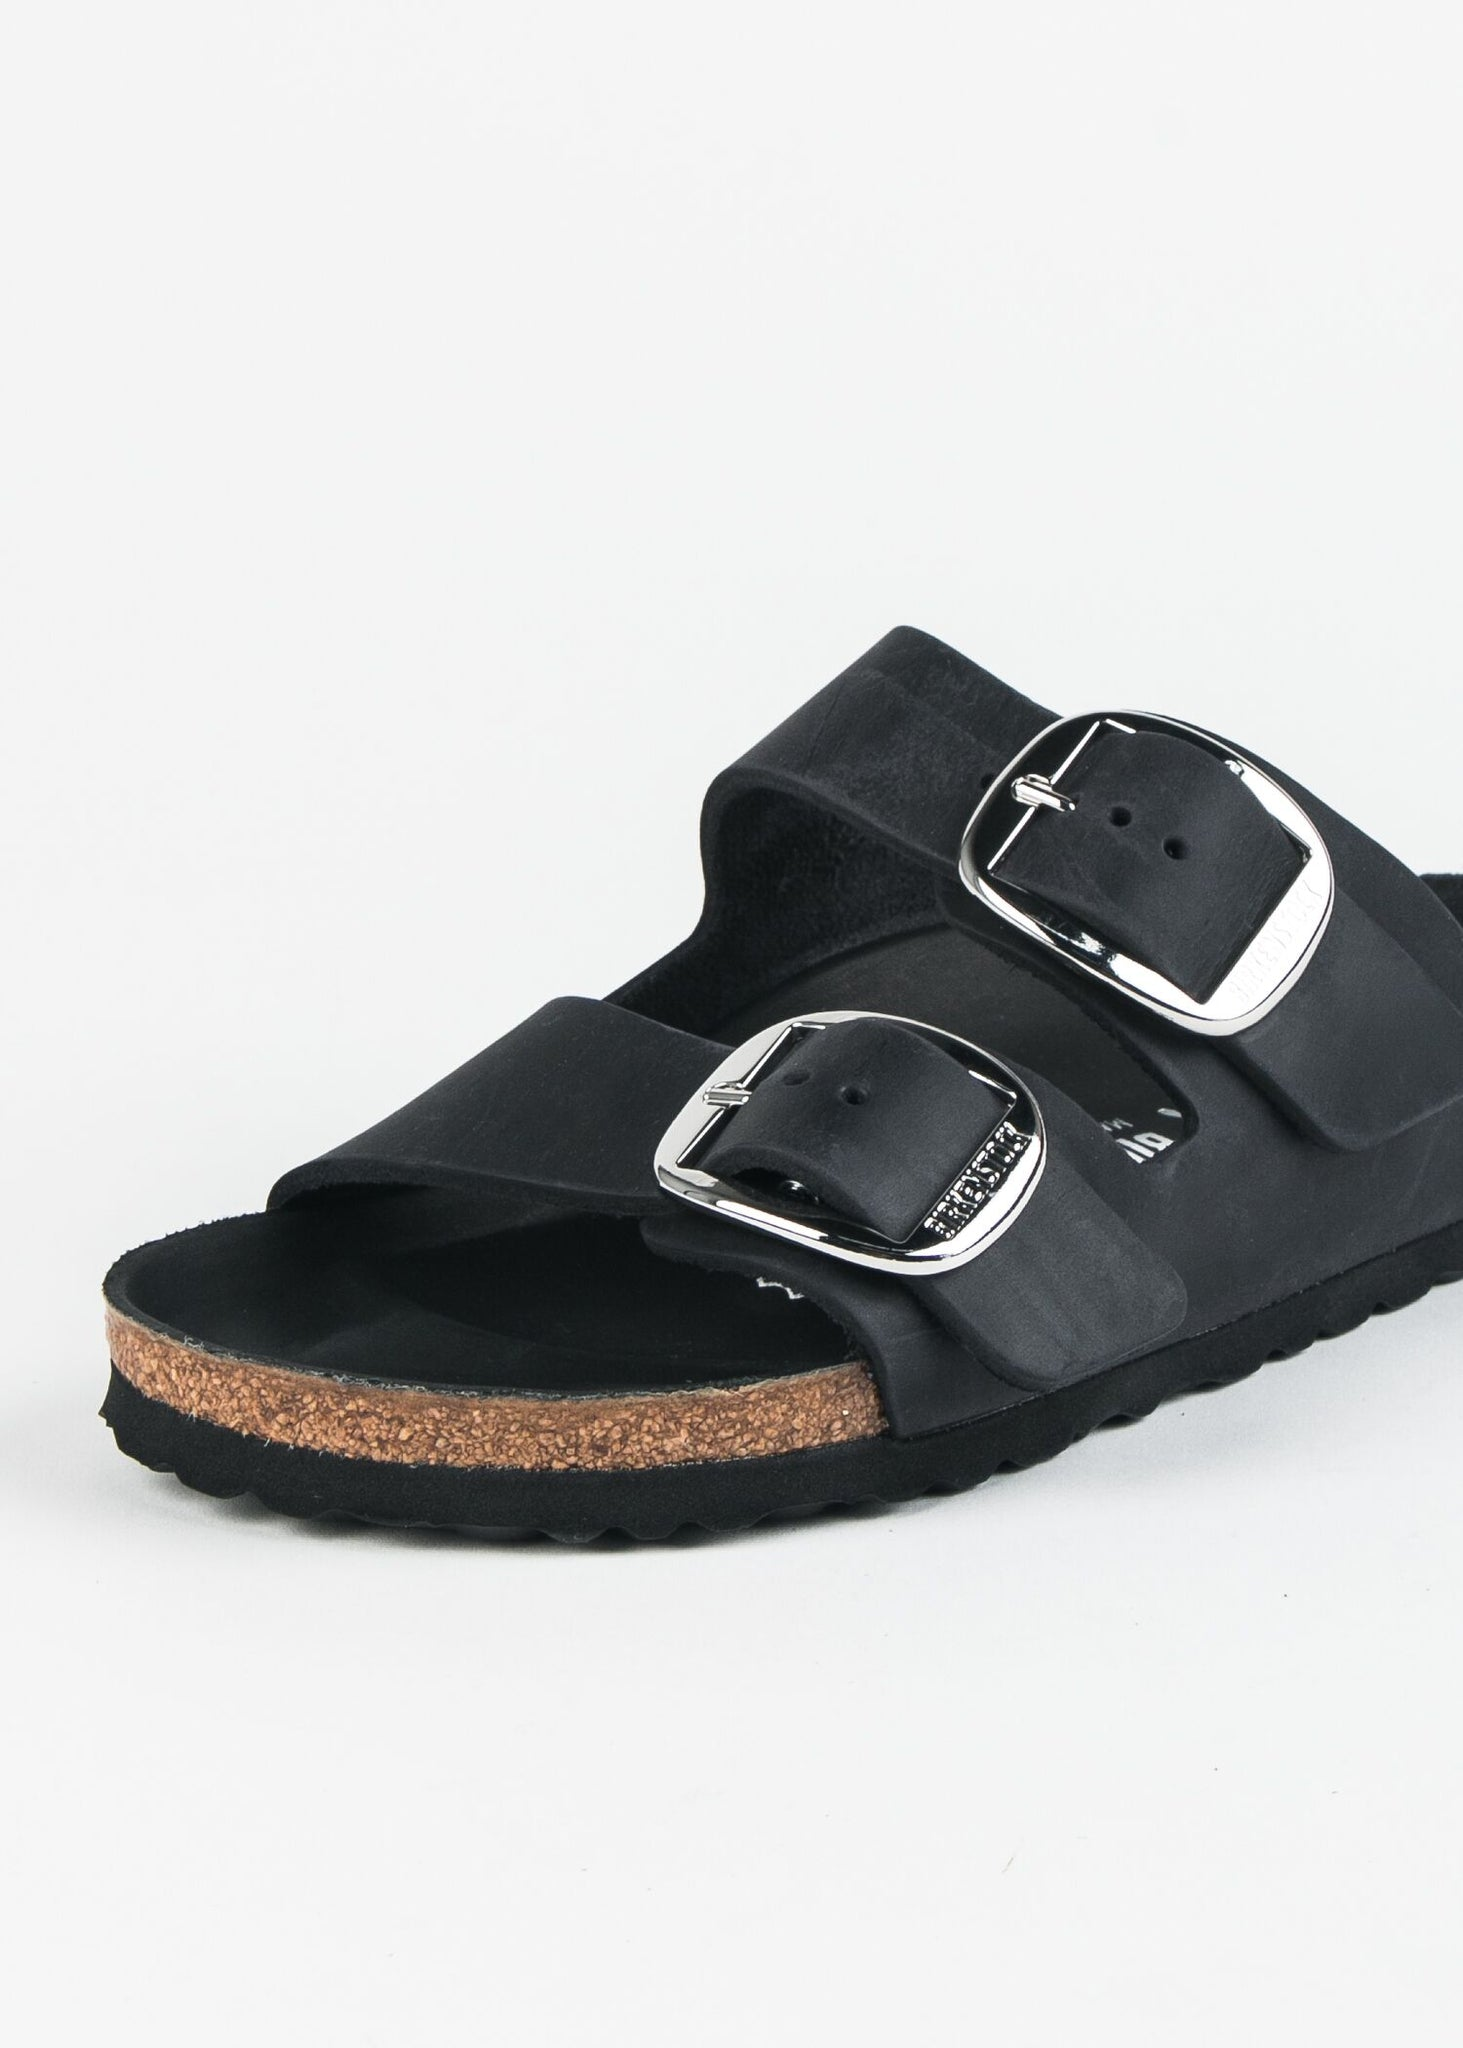 ARIZONA BIG BUCKLE SLIDE SANDAL